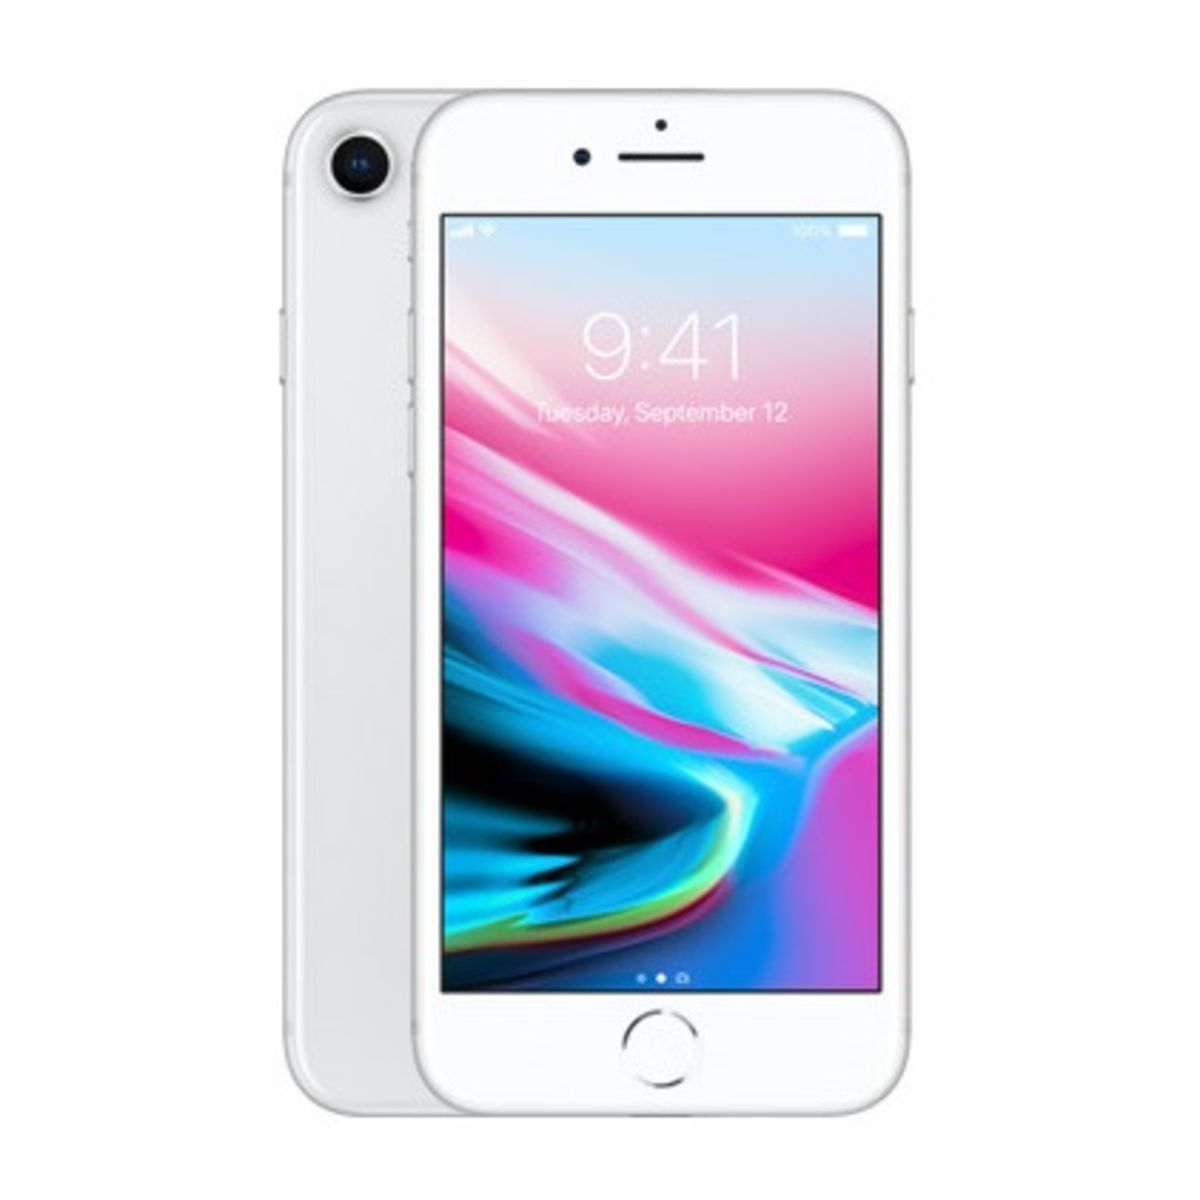 Apple Iphone 8 64gb Silver With Facetime 12 Months Apple Warranty Iphone Apple Iphone Iphone 8